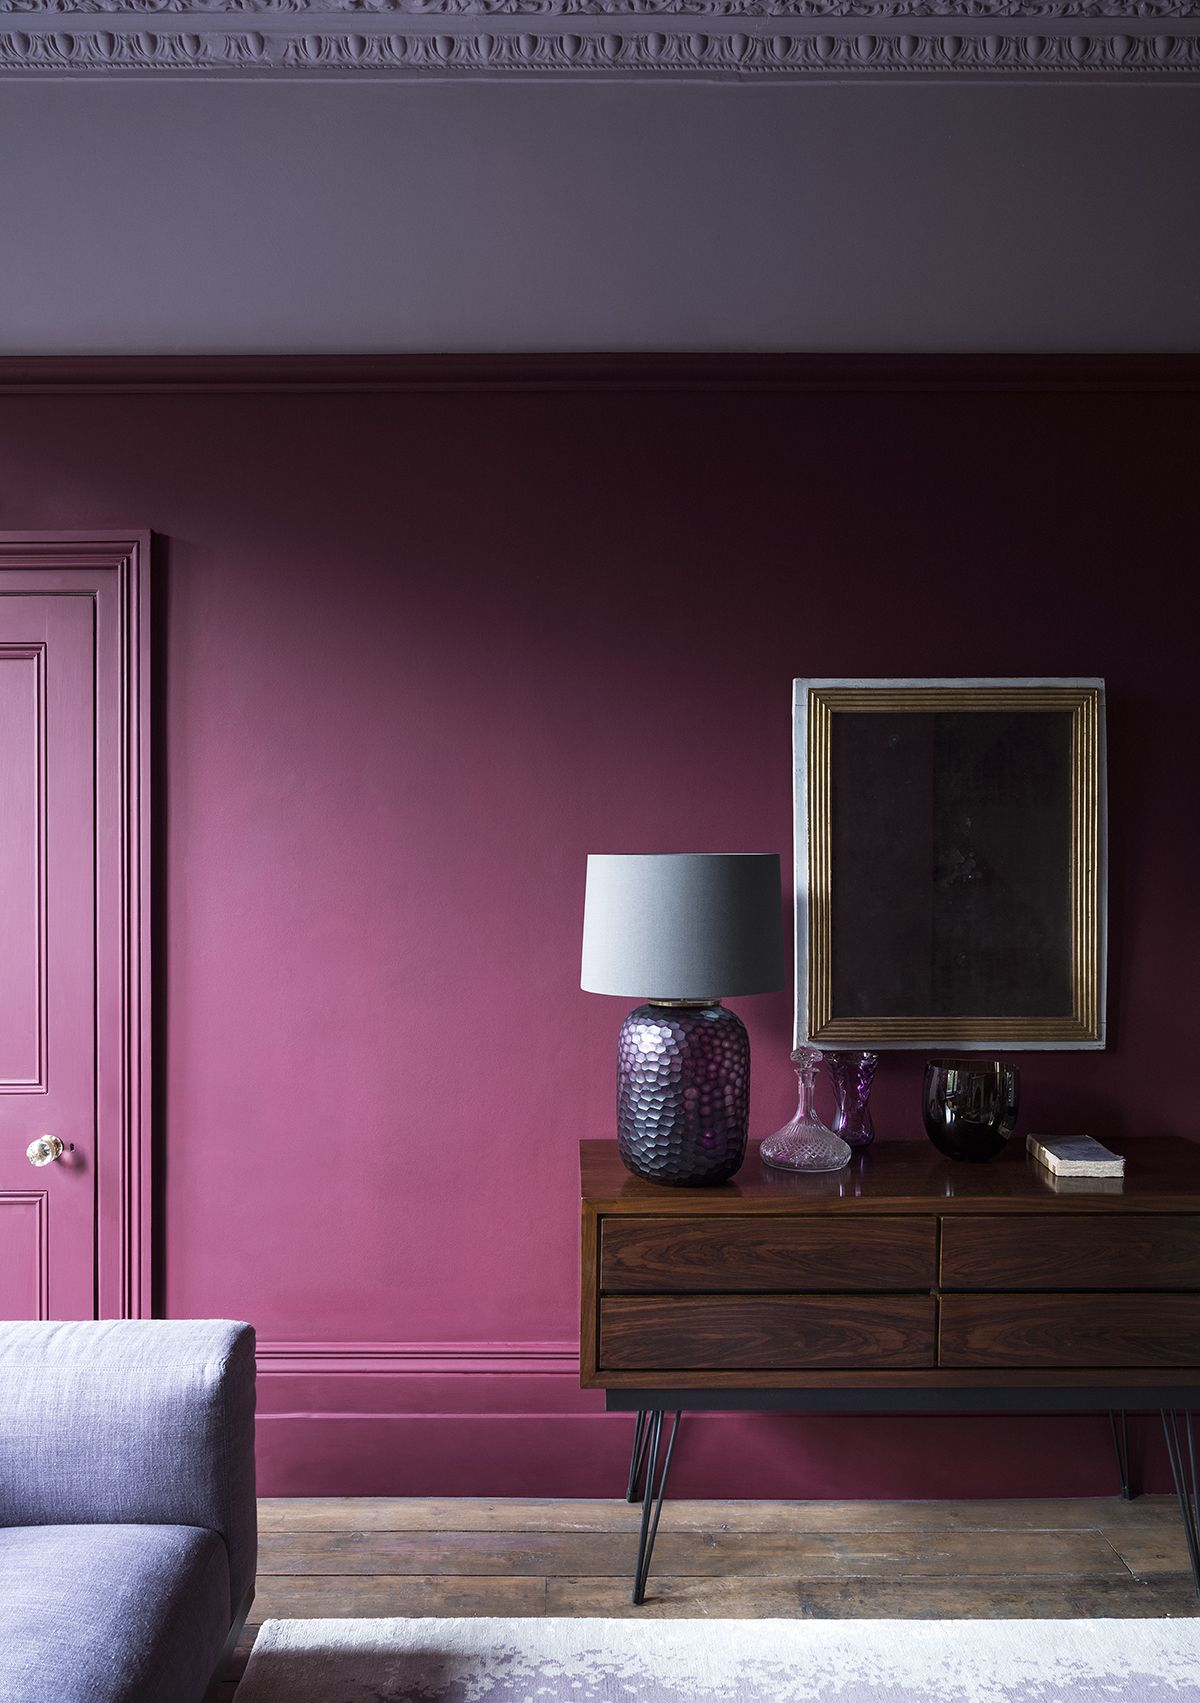 Walls In Grenache 372 Ceiling In Lady Char S Lilac 368 Paint Ideas Home Decor Pink Red Living Room Red Living Room Colors Paint Colors For Living Room #red #and #purple #living #room